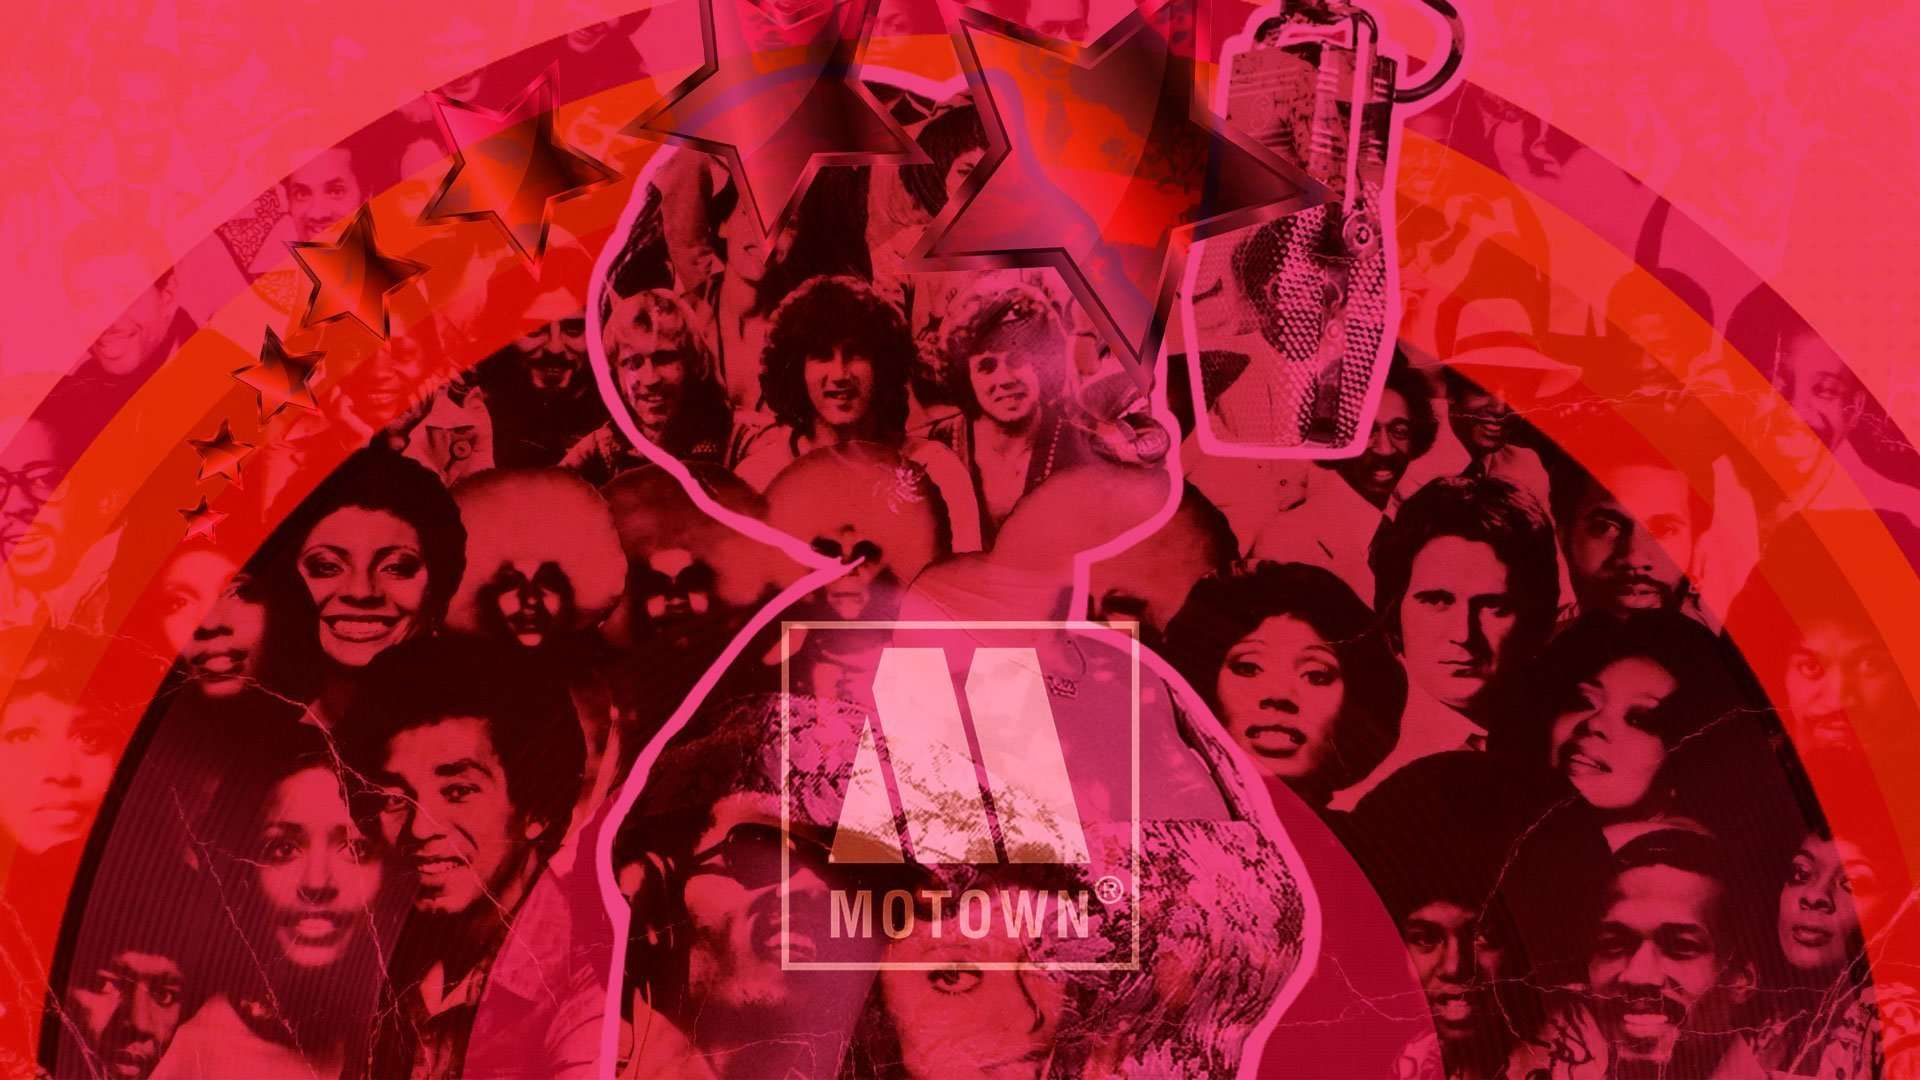 30 Motown Records Facts - 2SeasSessions